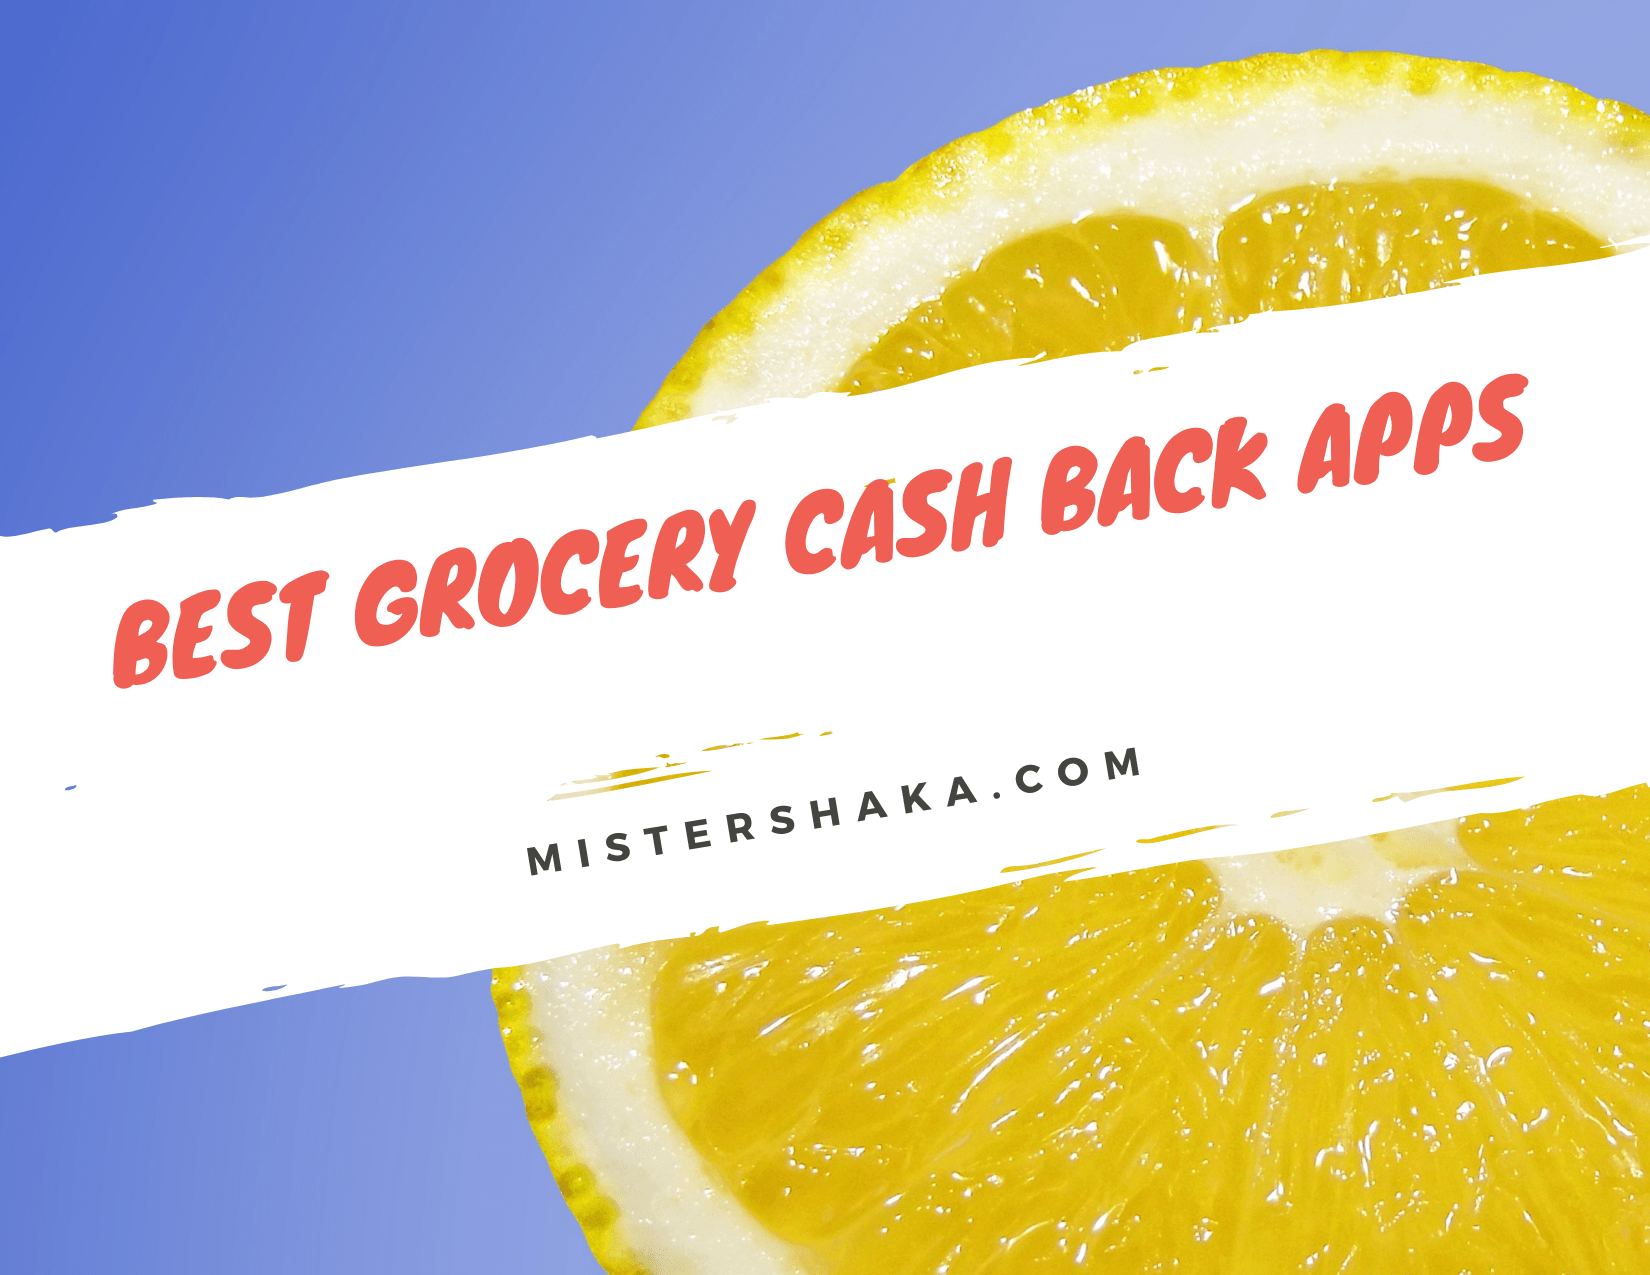 Best Grocery Cash Back Apps For Amazing Savings